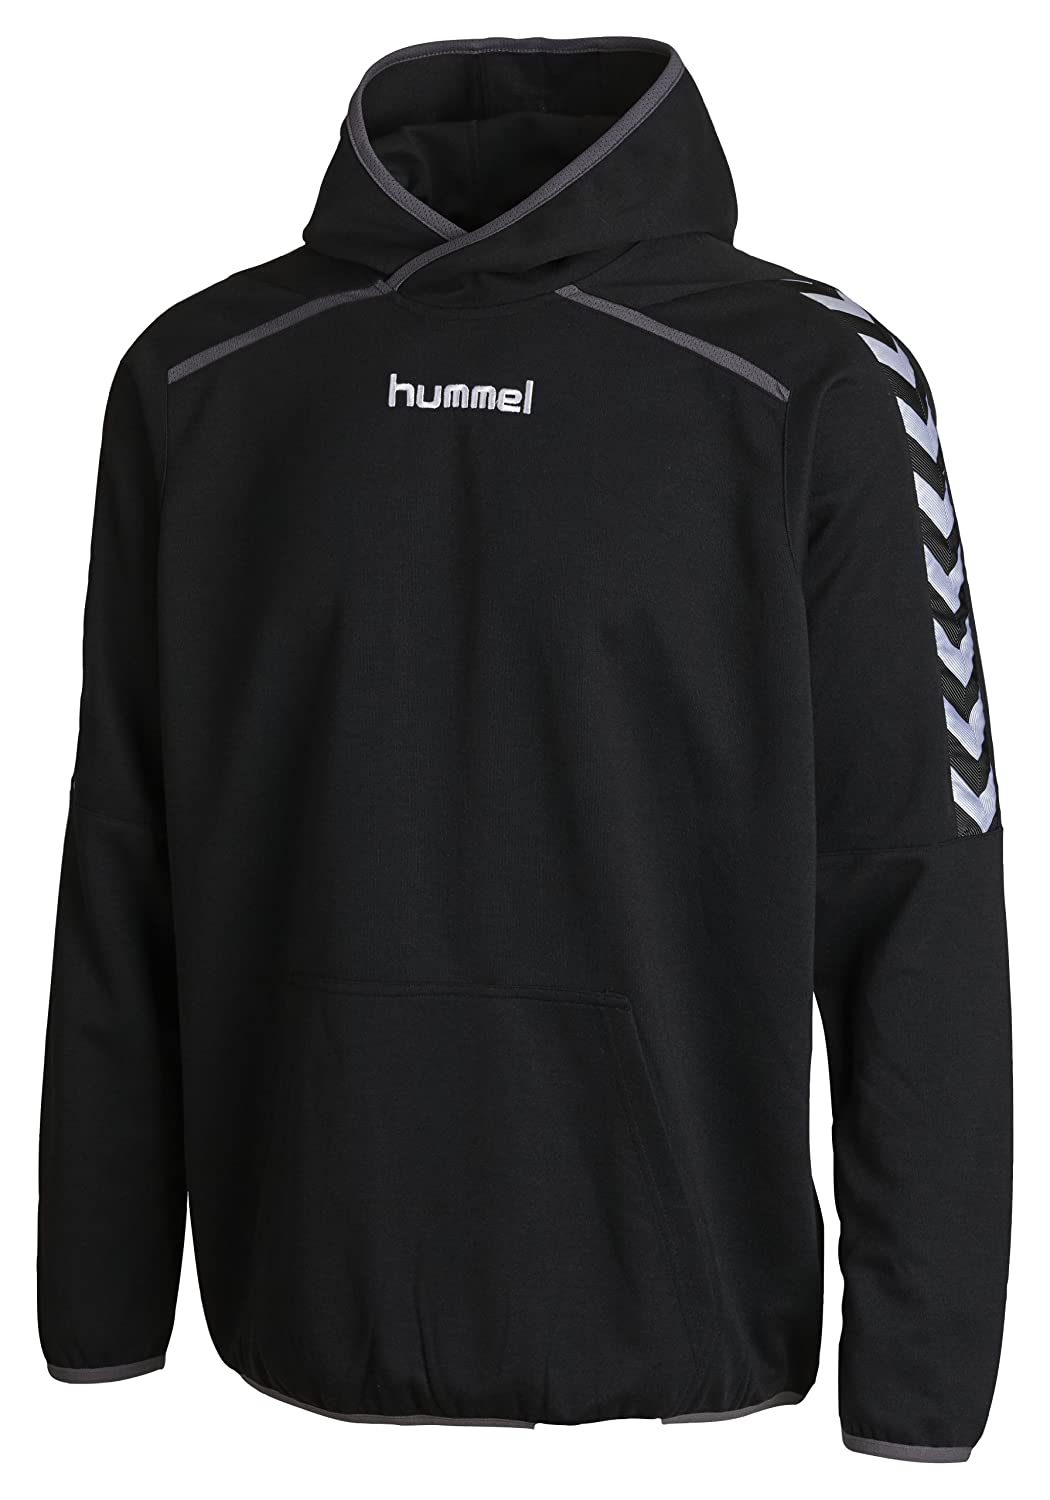 Hummel Kinder Sweatshirt Stay Authentic Poly Hoody Black 6-8(116-128) 36-989-2001